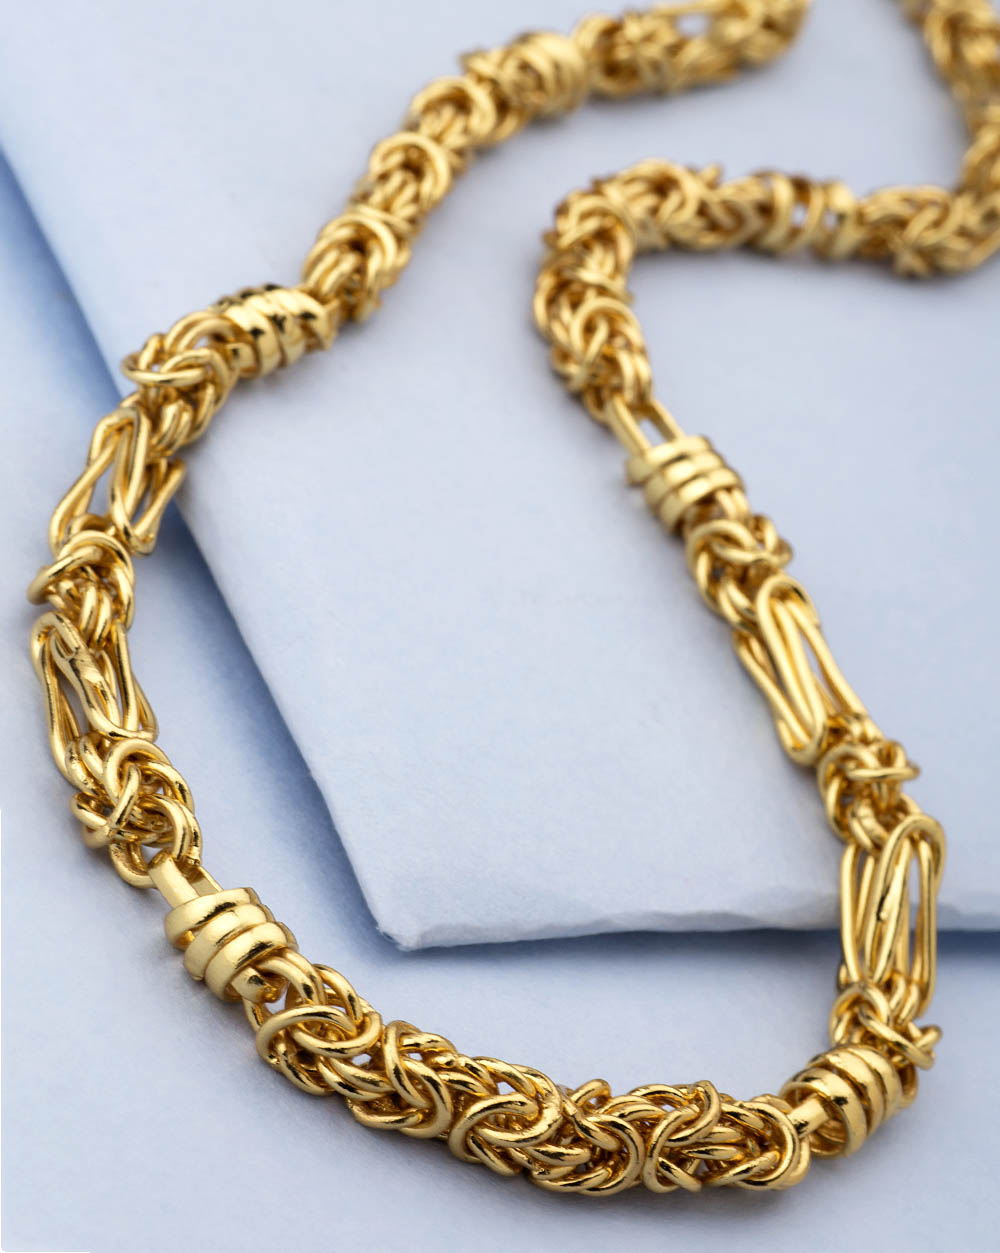 Buy Gold Plated Chain For Men In Stylish Interlink Design Online ...